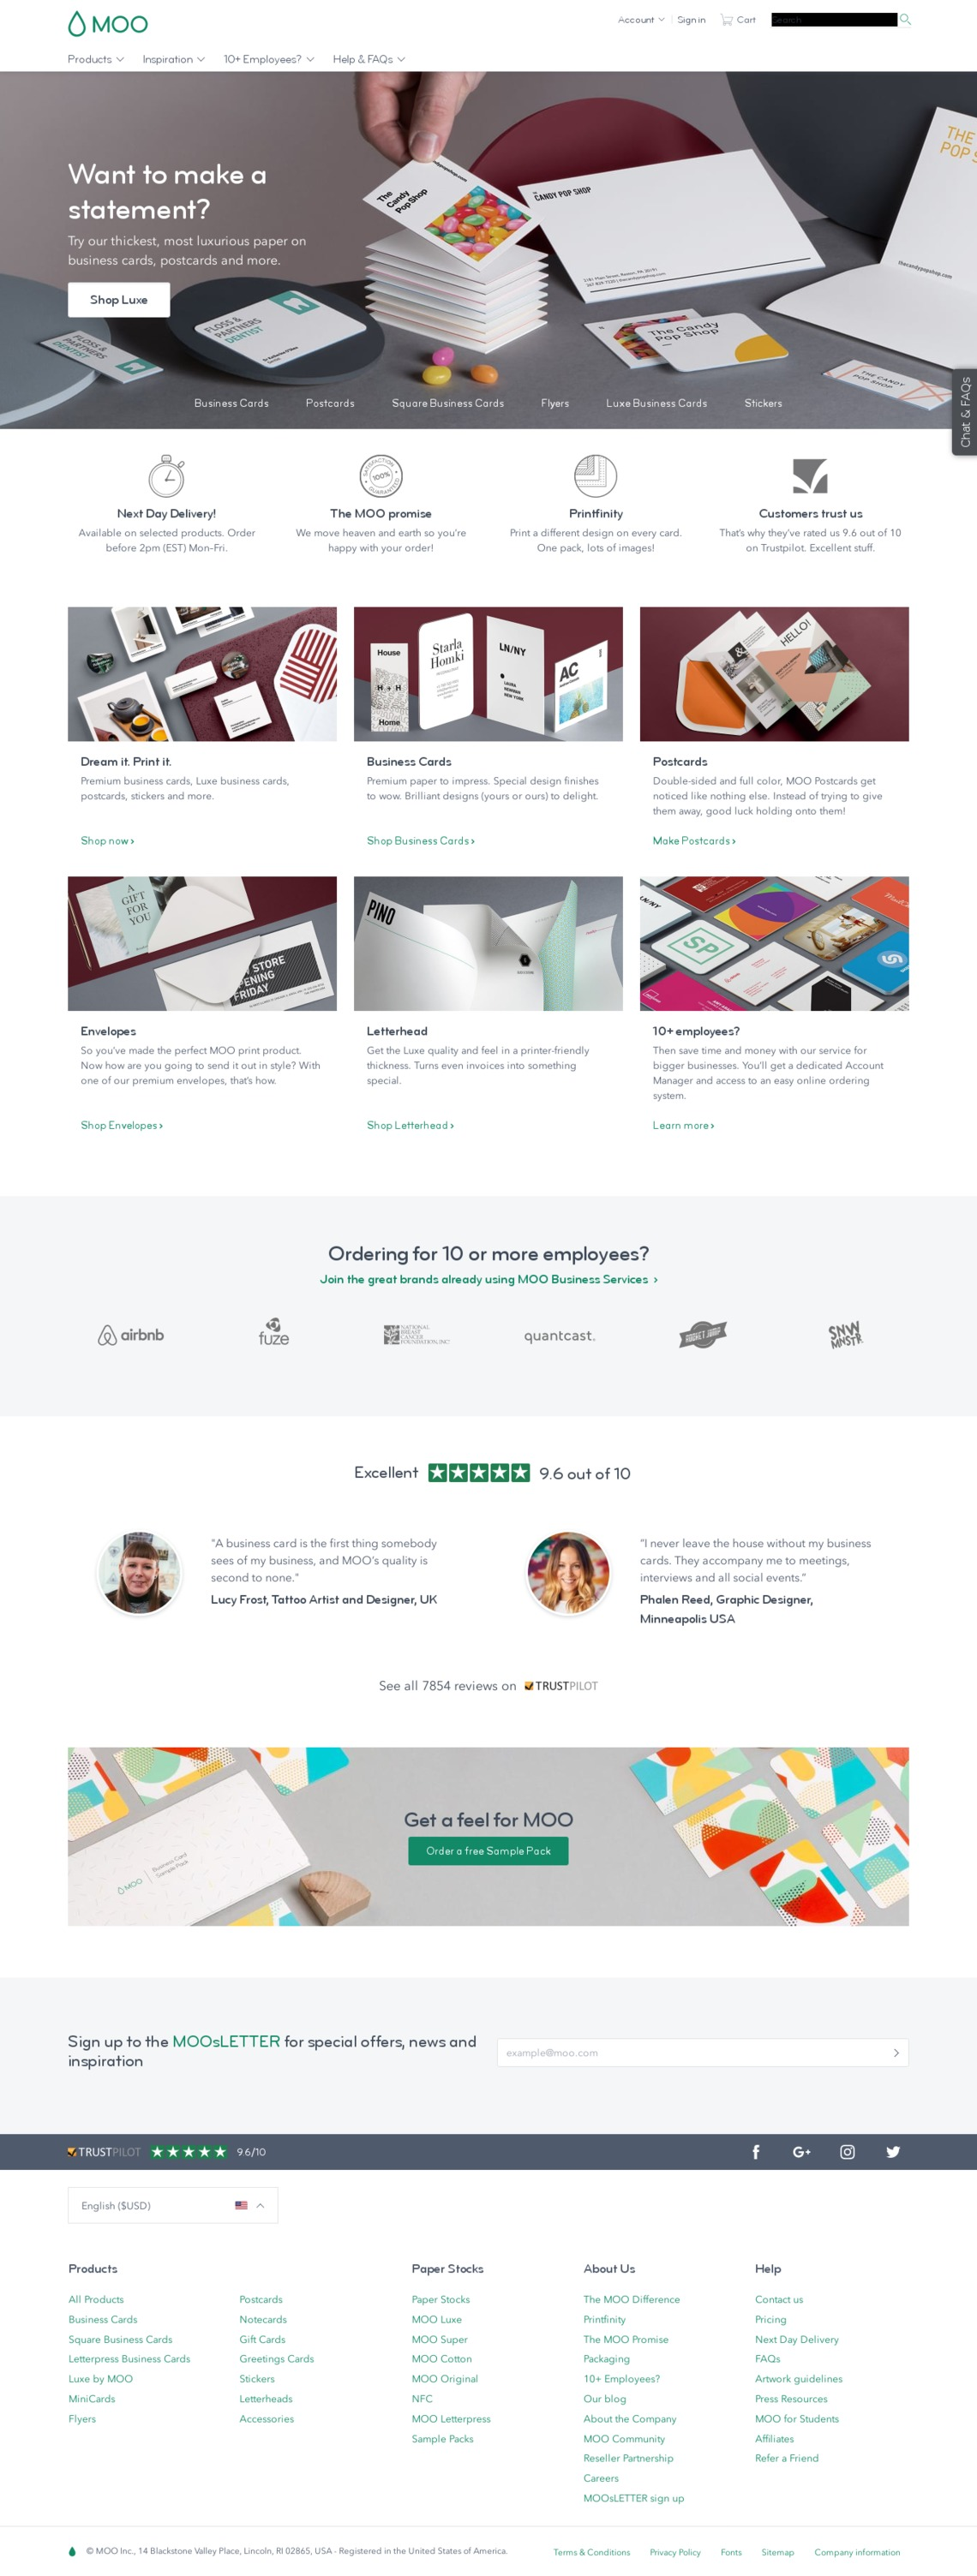 moo custom land book the finest hand picked website inspirations